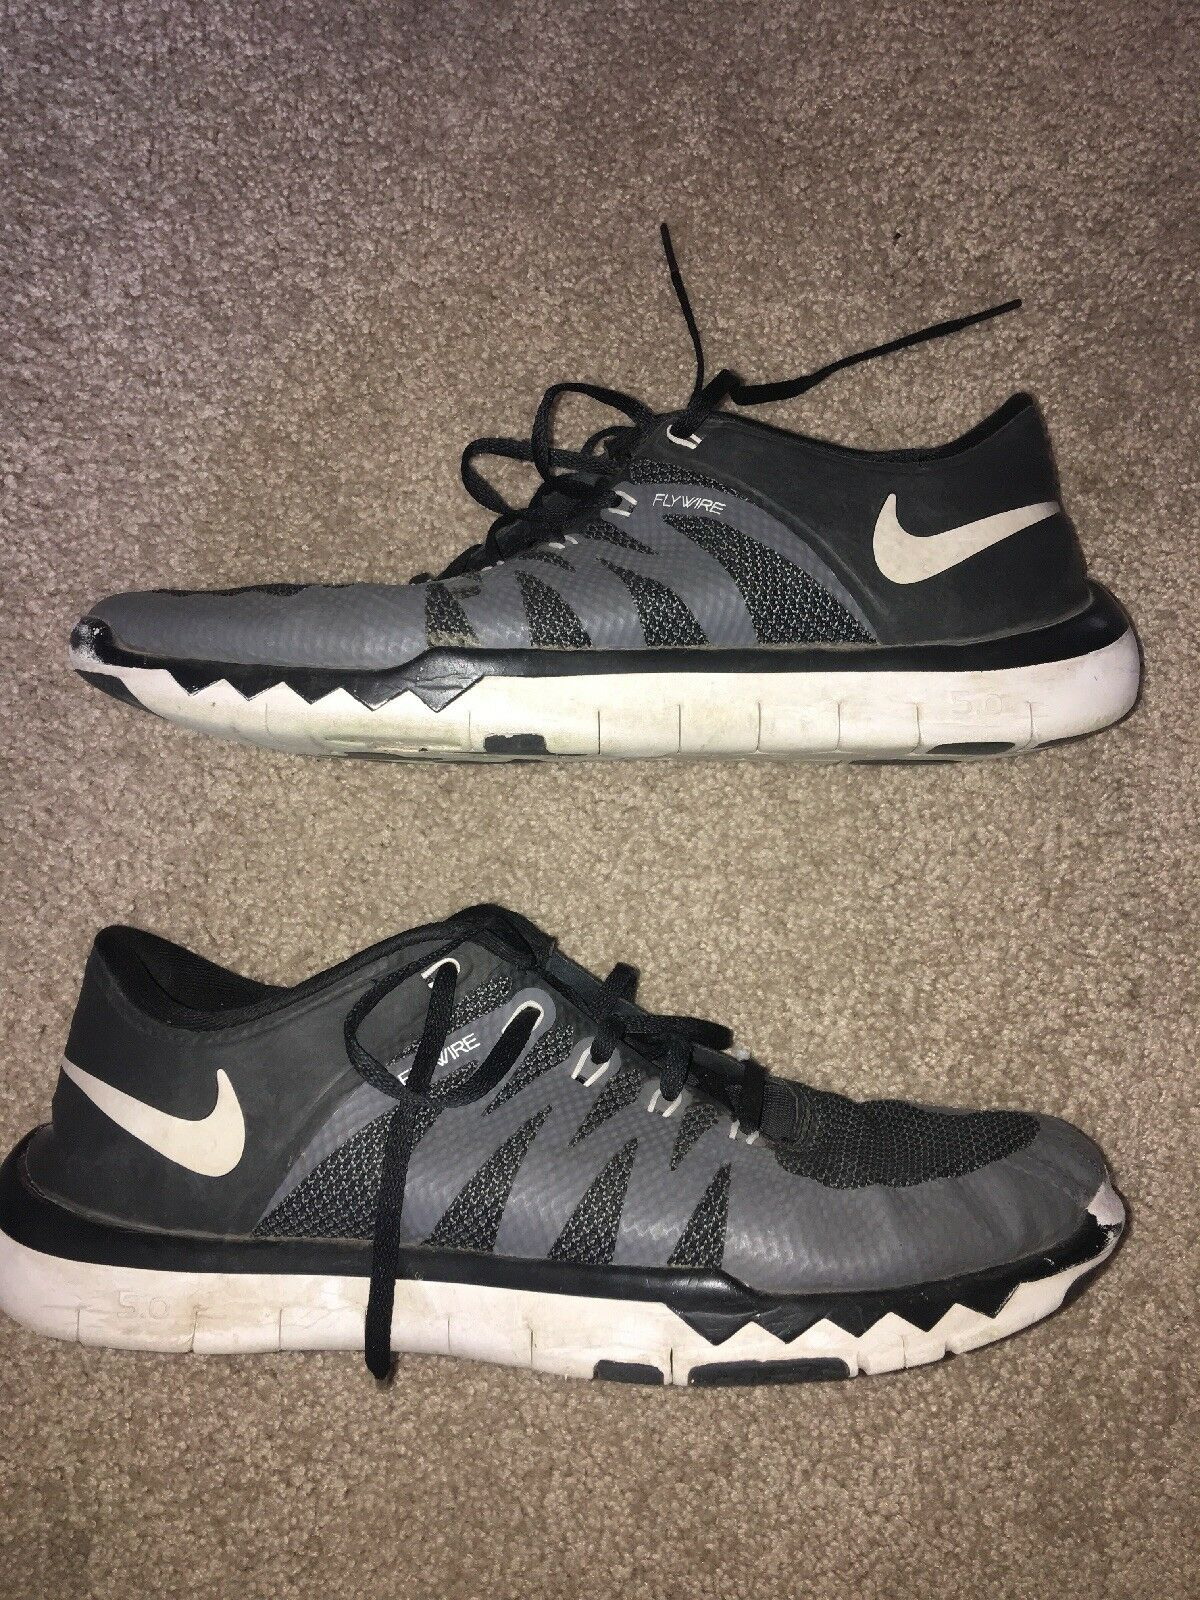 MEN'S NIKE FREE TRAINER 5.0 V6: SIZE 11.5 GRY/WHT/BLK 719922-010 The most popular shoes for men and women